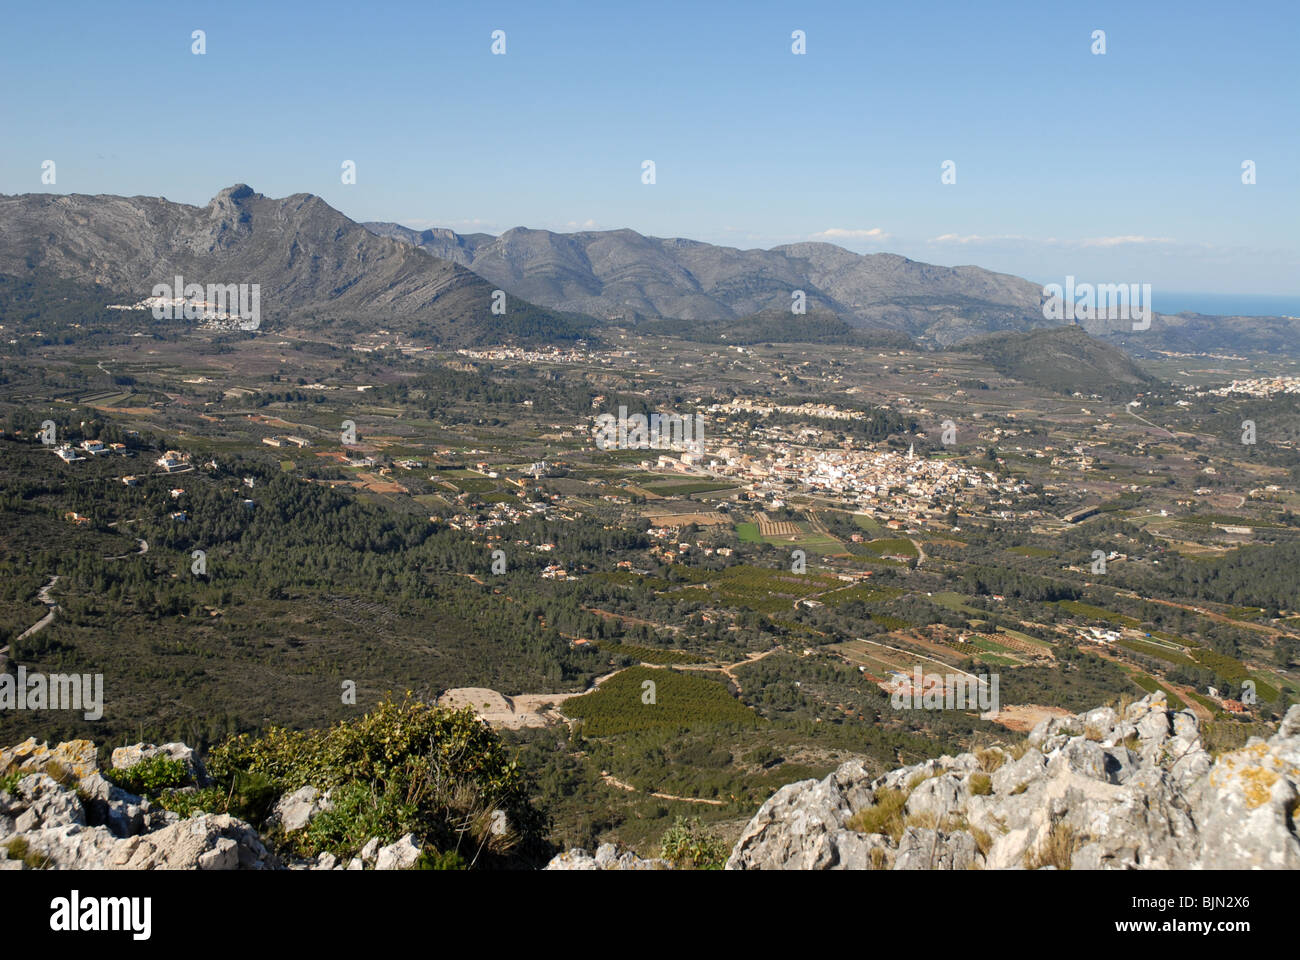 view over the Jalon Valley, Alicante Province, Comunidad Valenciana, Spain - Stock Image